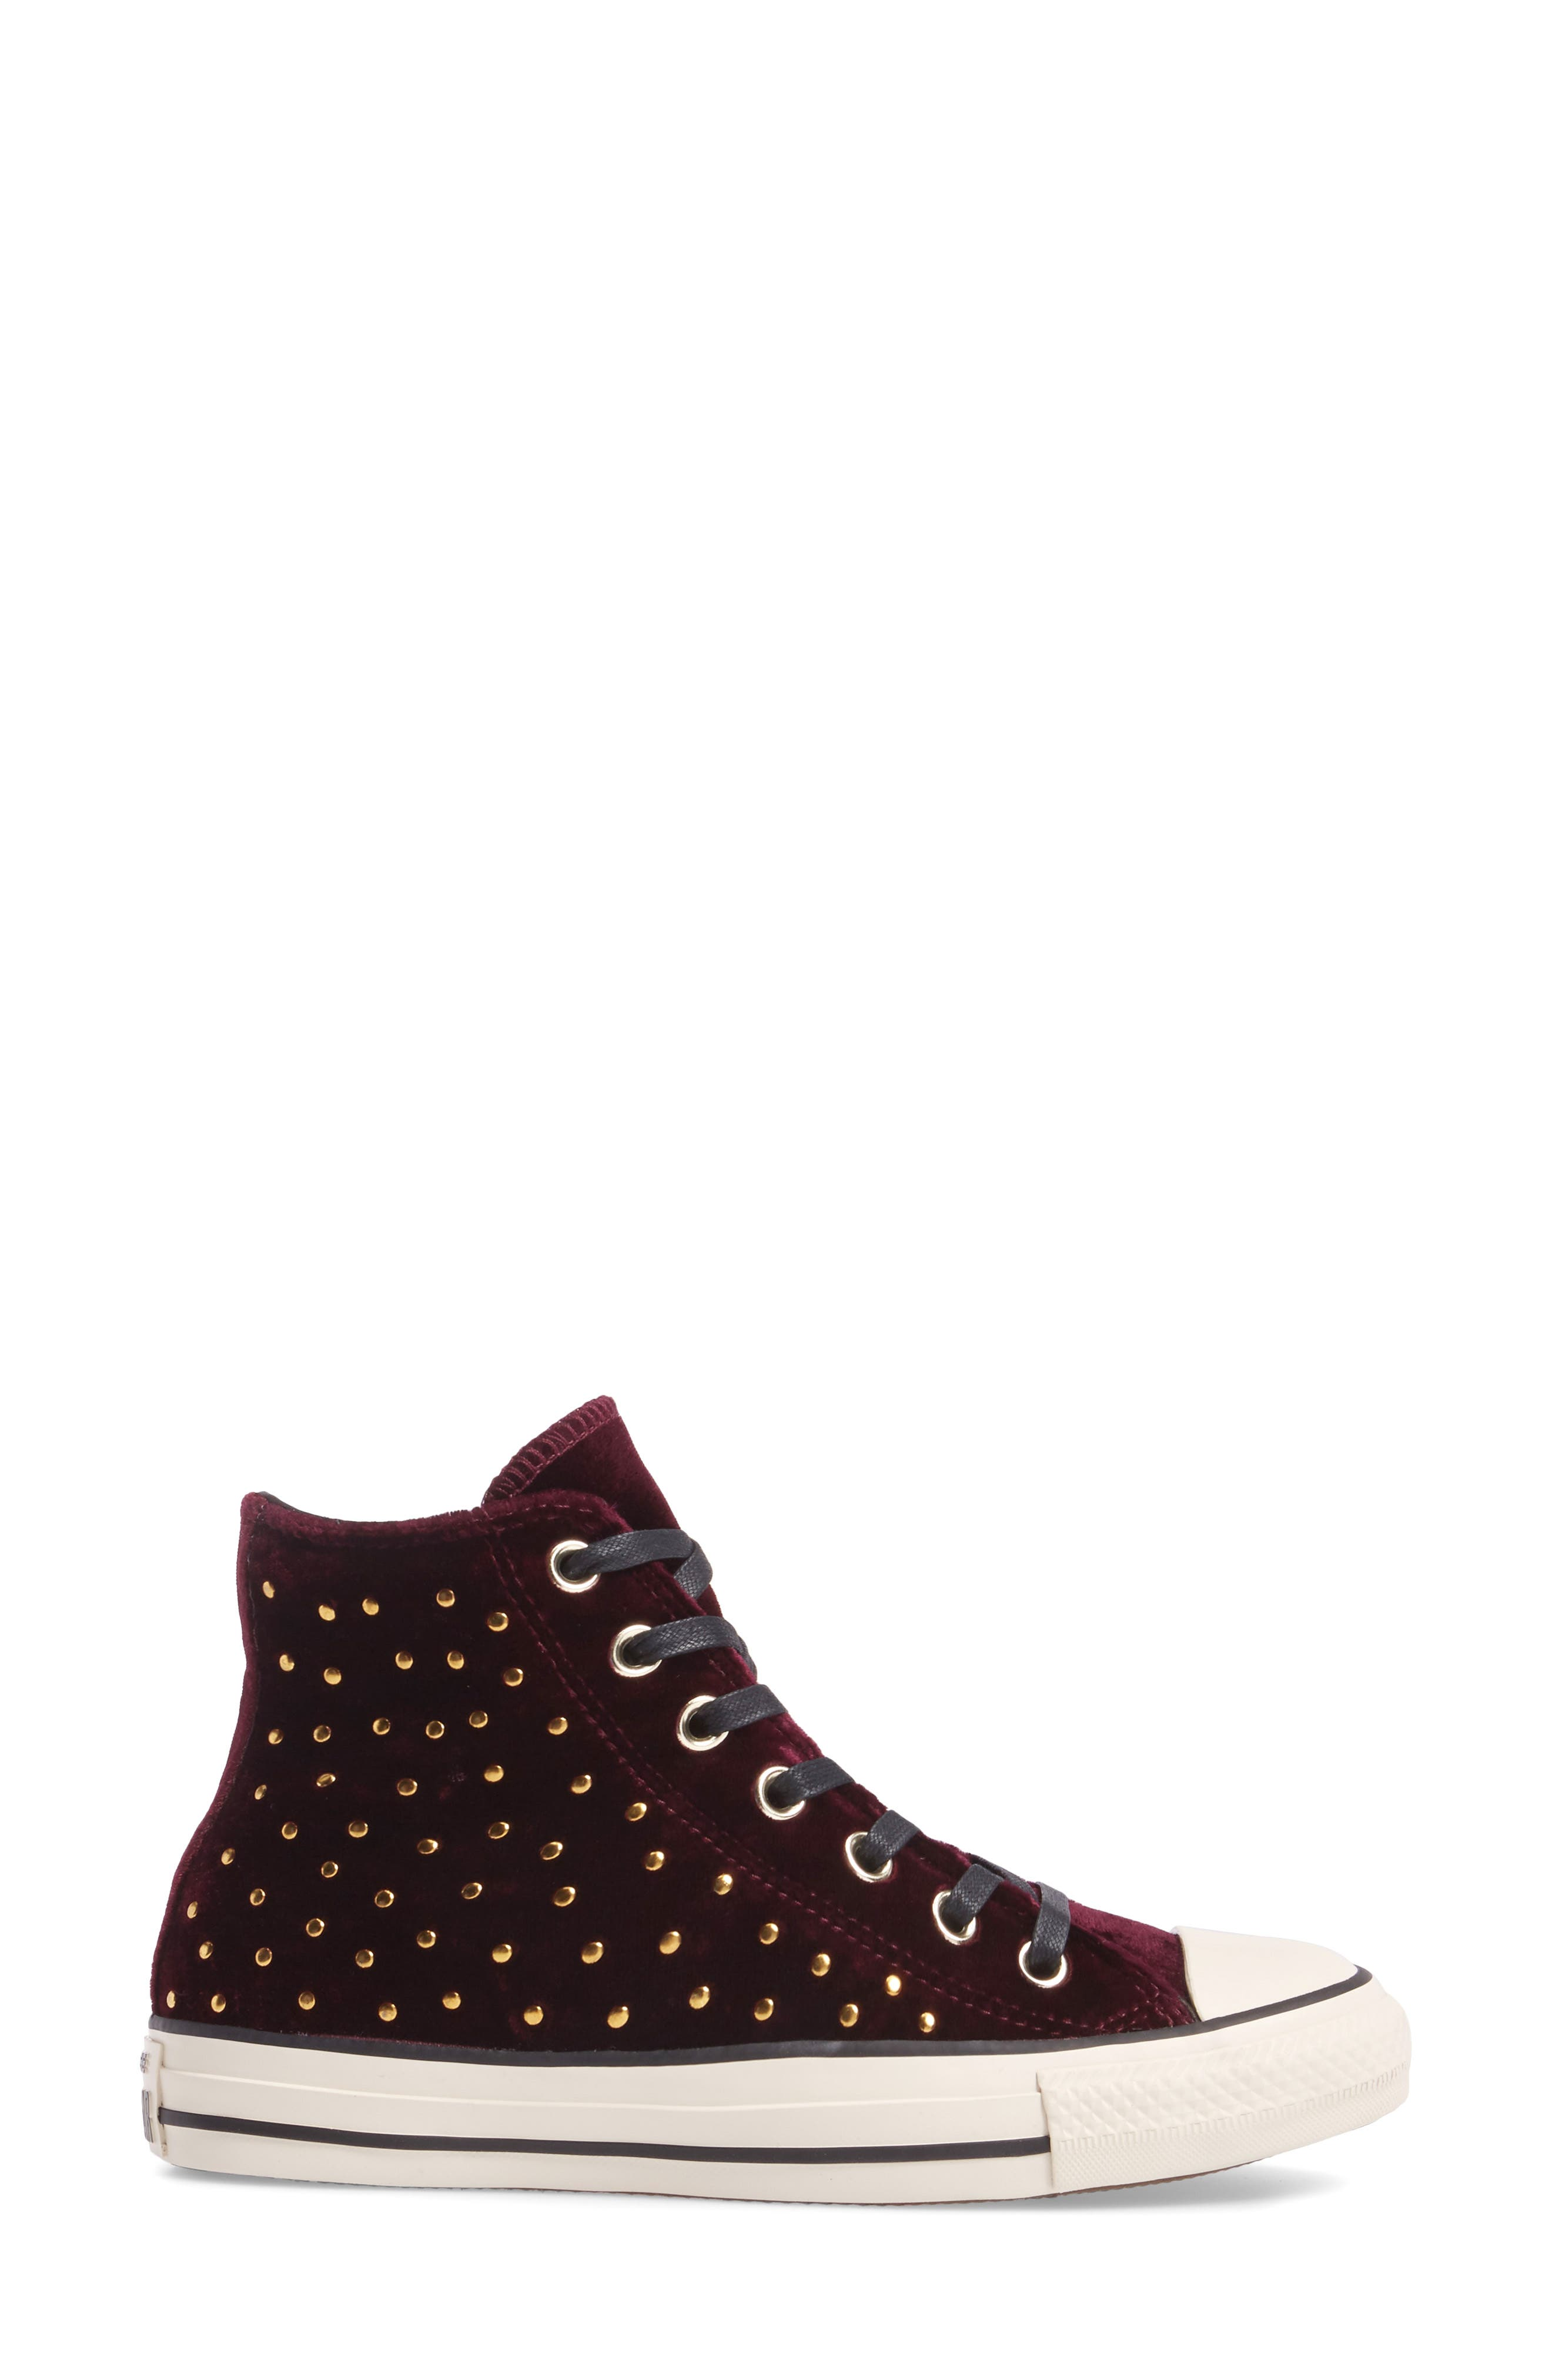 Chuck Taylor<sup>®</sup> All Star<sup>®</sup> Studded High Top Sneakers,                             Alternate thumbnail 9, color,